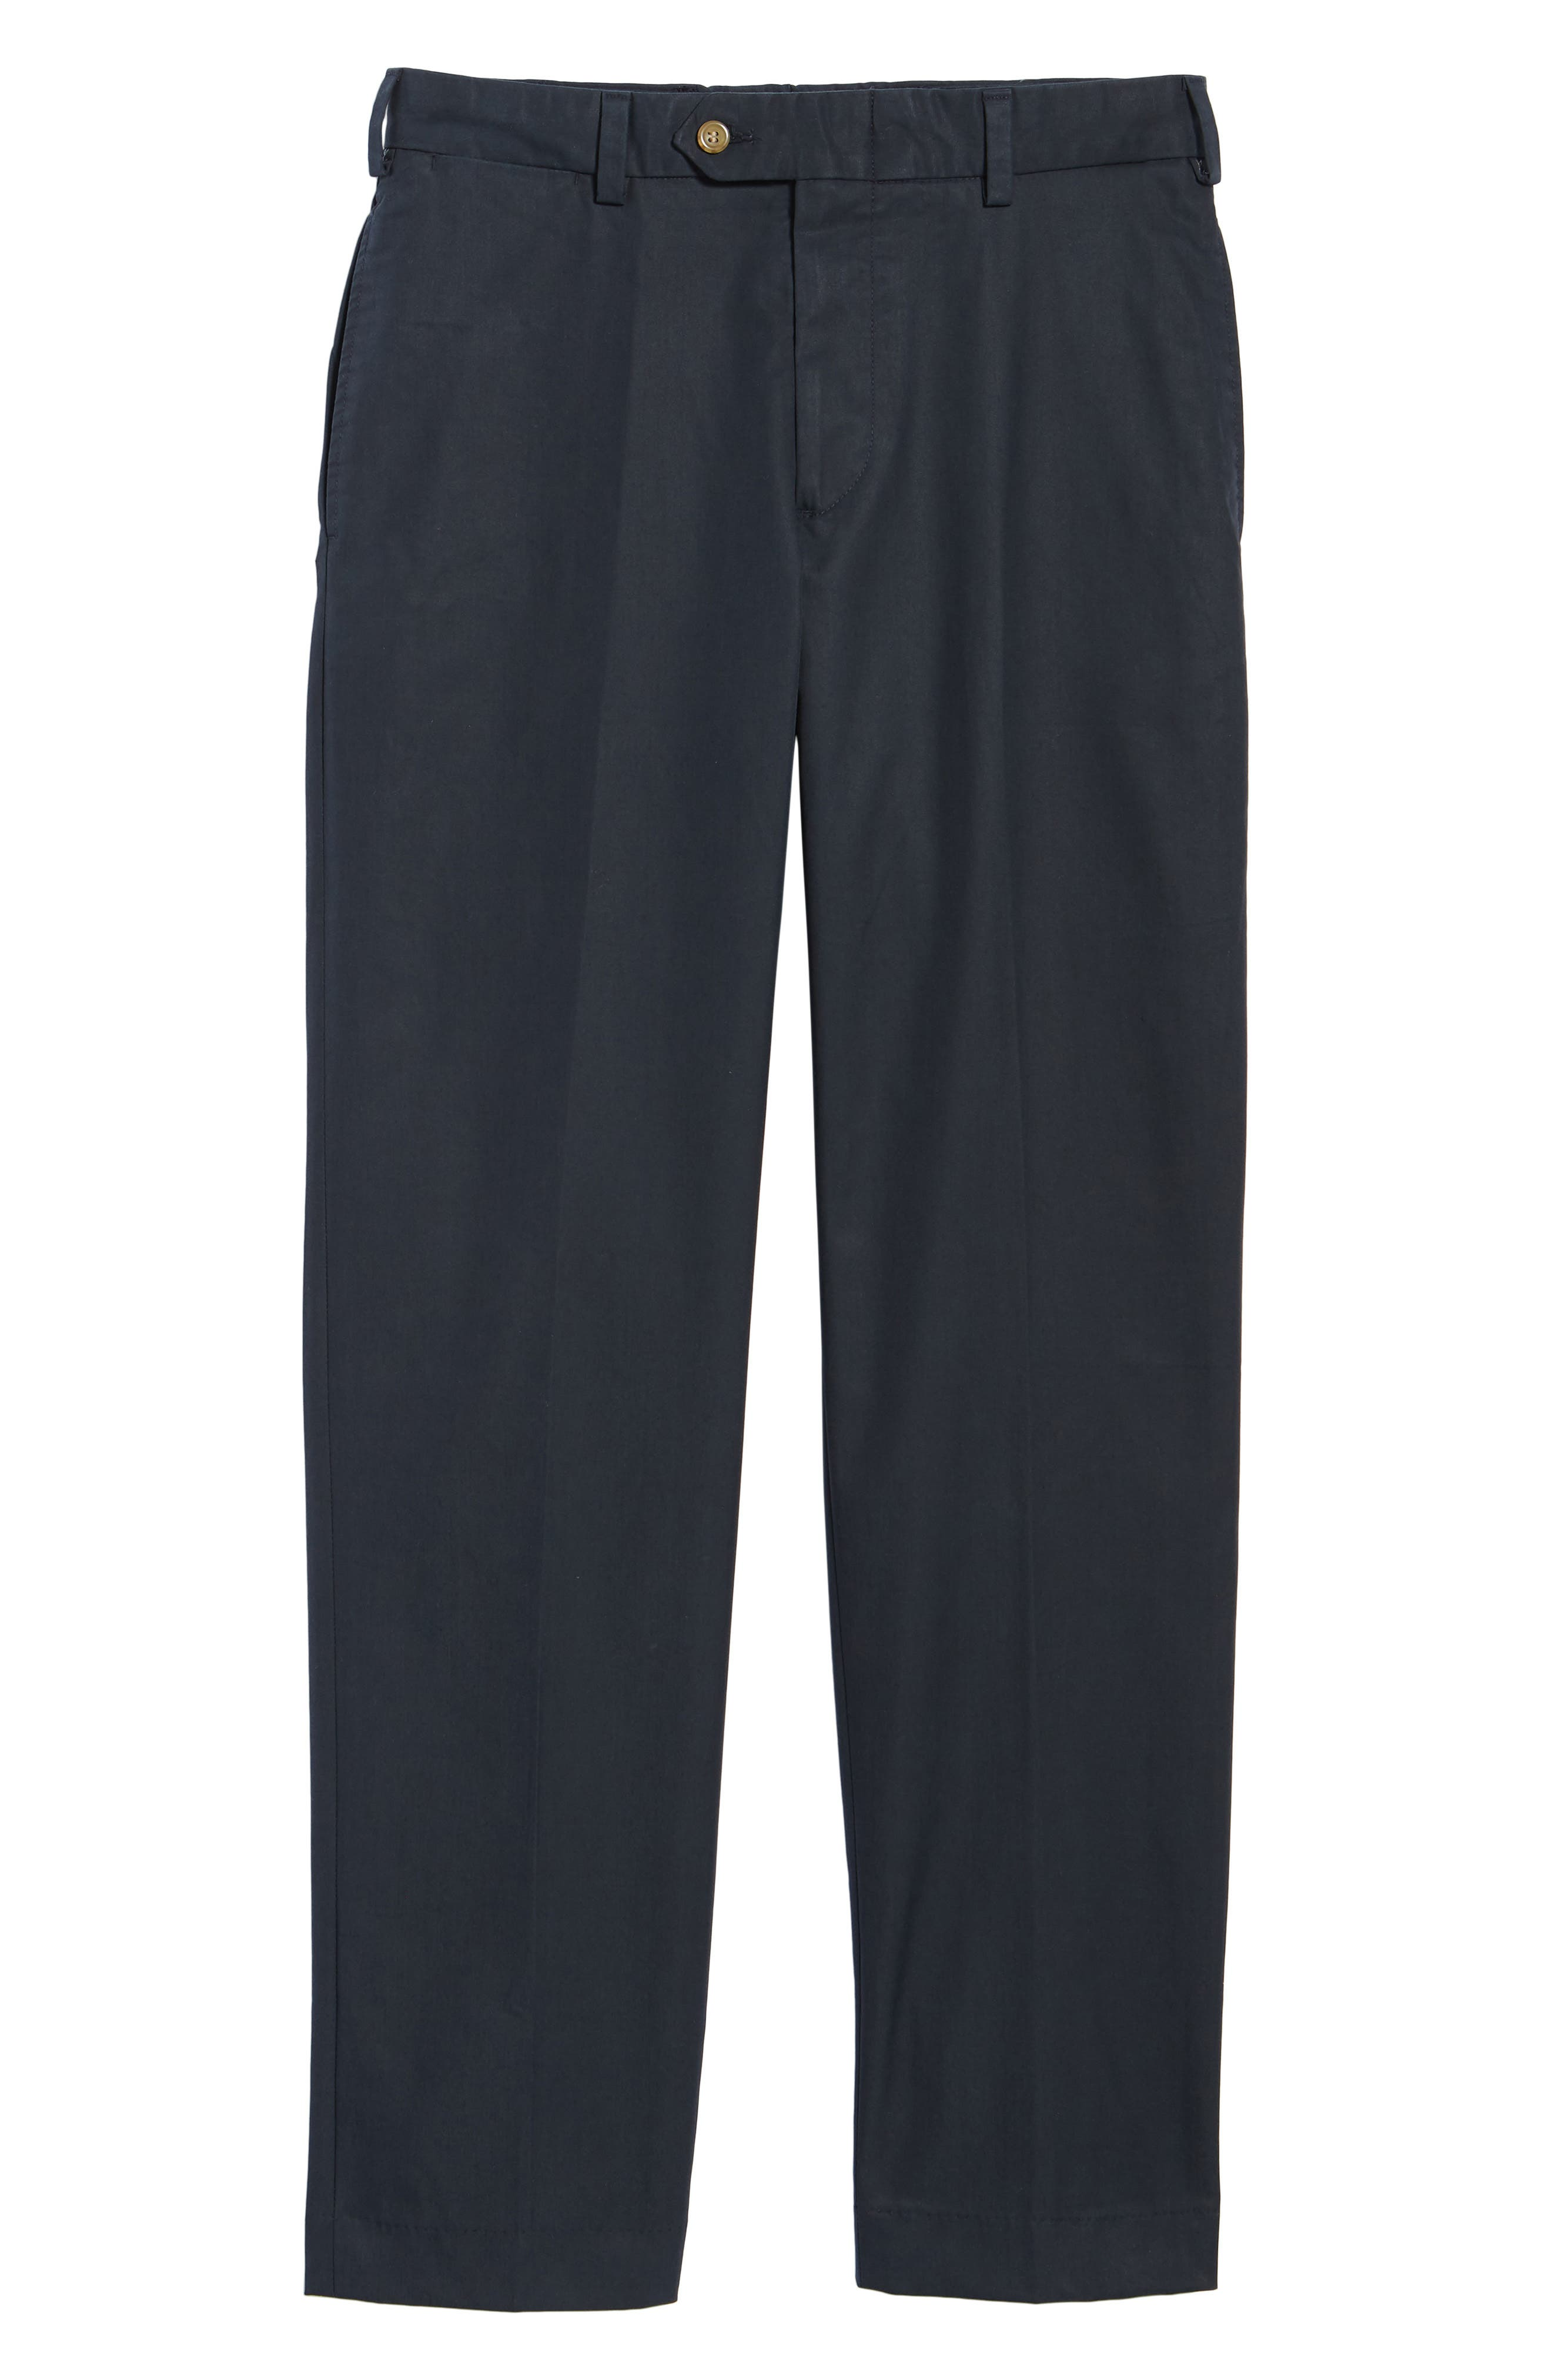 M2 Classic Fit Flat Front Travel Twill Pants,                             Alternate thumbnail 6, color,                             Navy